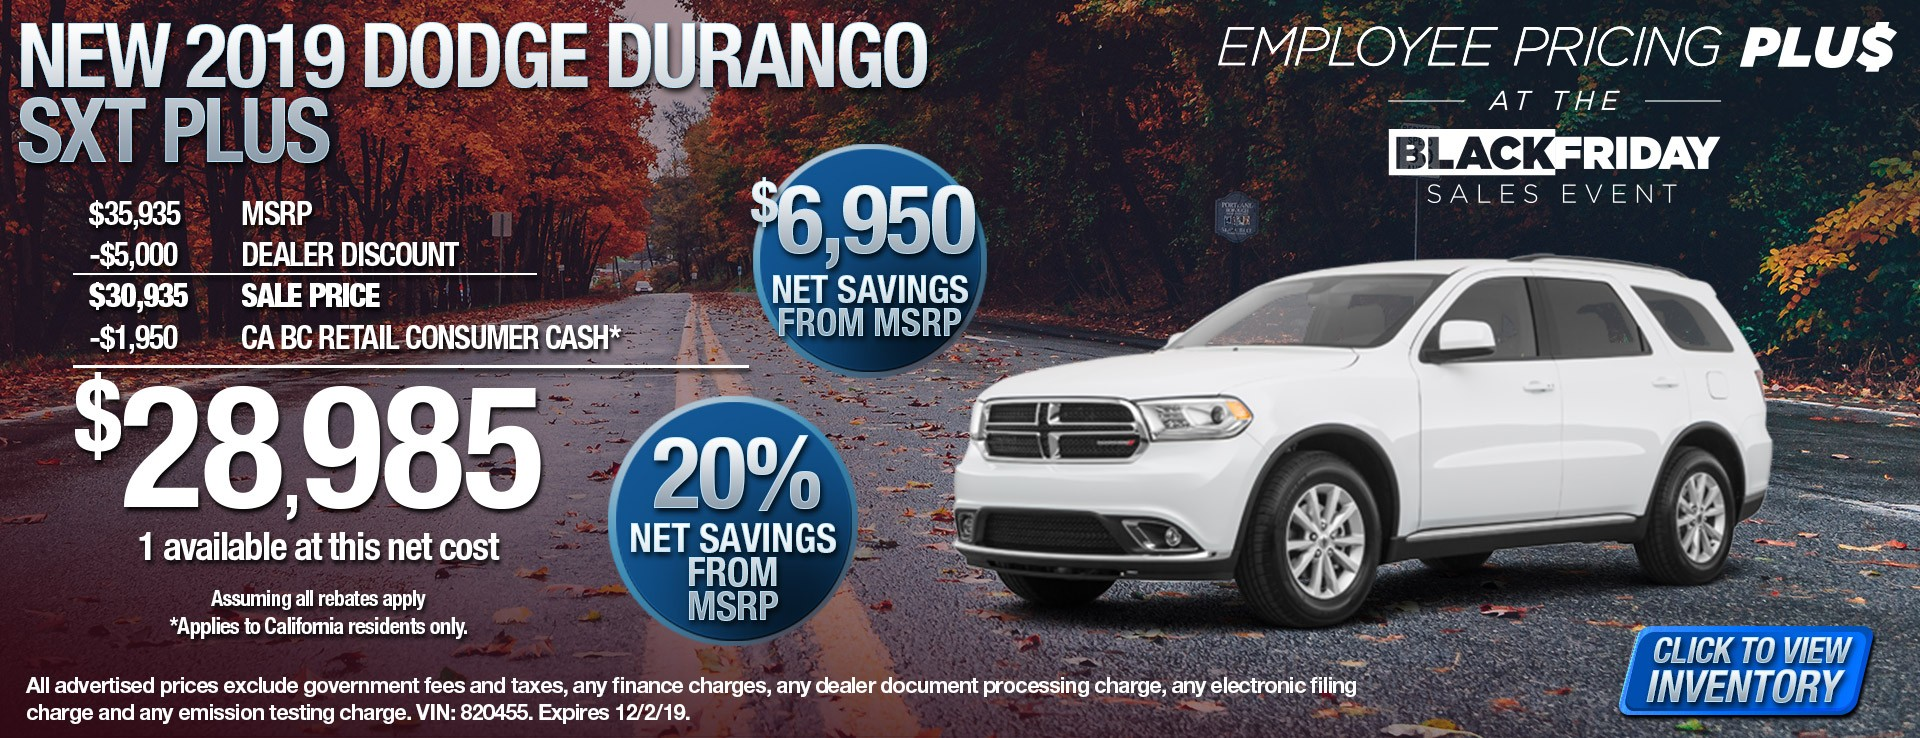 2019 Dodge Durango SXT Plus - $6950 New Savings from MSRP